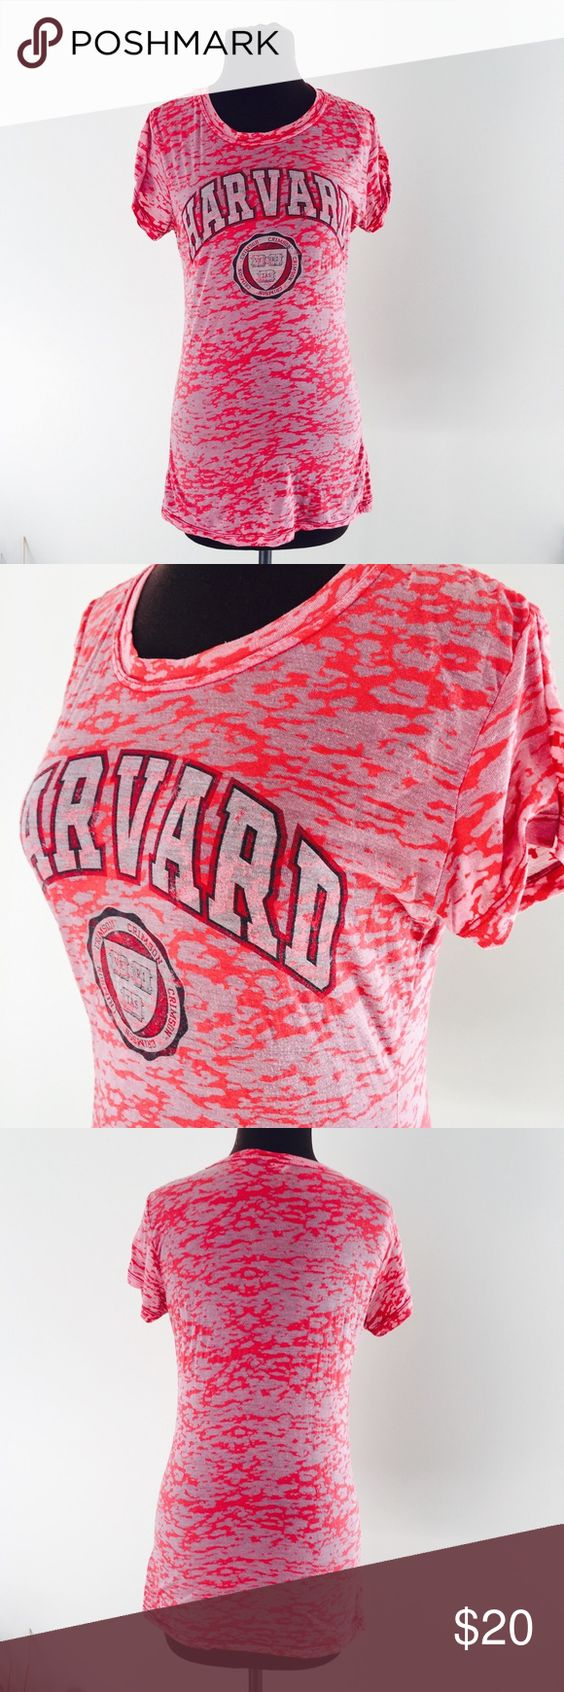 ❗️Harvard Camouflage Tee! ❗️Harvard camouflage tee! Fits like a small. Good condition. I'm having a huge End of the Year Sale! Enjoy discounts off bundles or feel free to make an offer! Selling each item to the first reasonable offer I receive ;-) Asap shipping! Harvard Tops